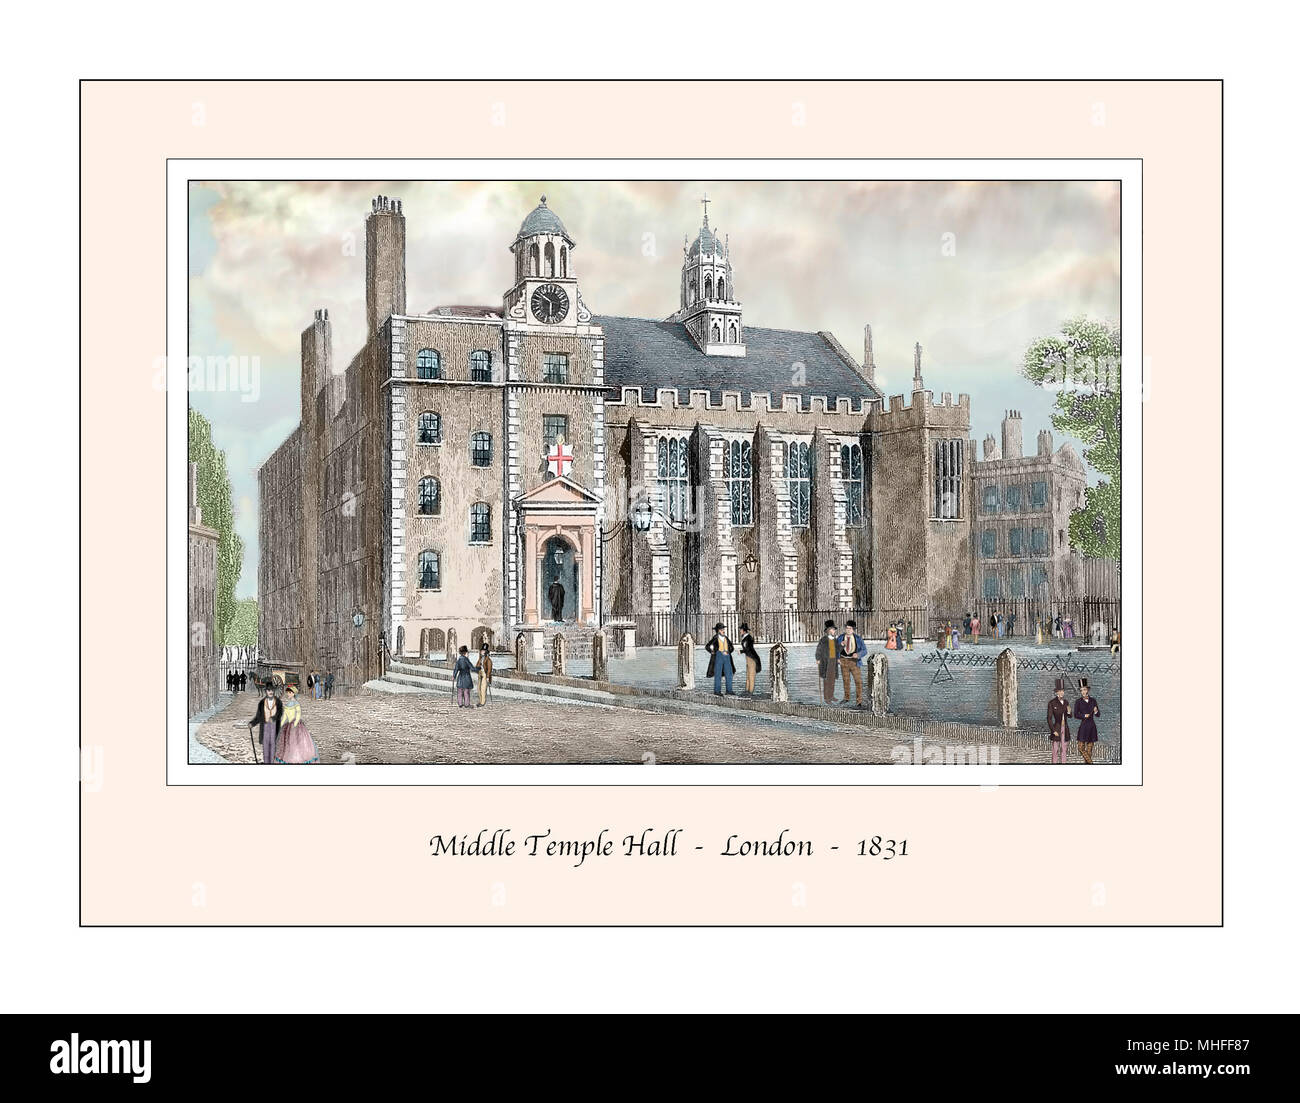 Middle Temple Hall London Original Design based on a 19th century Engraving - Stock Image